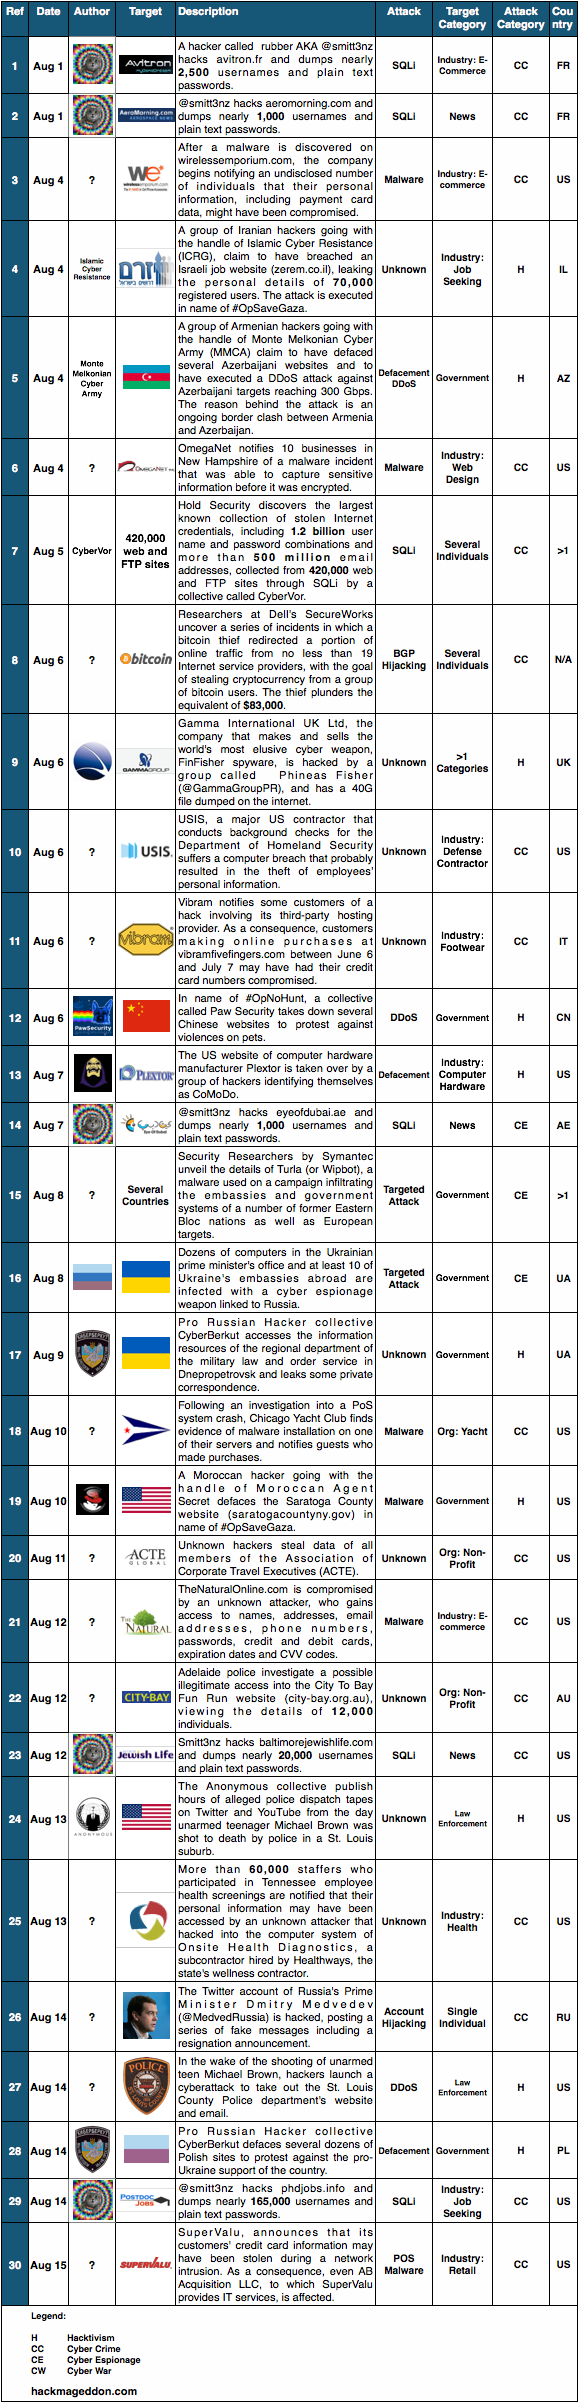 1-15 August 2014 Cyber Attacks Timeline